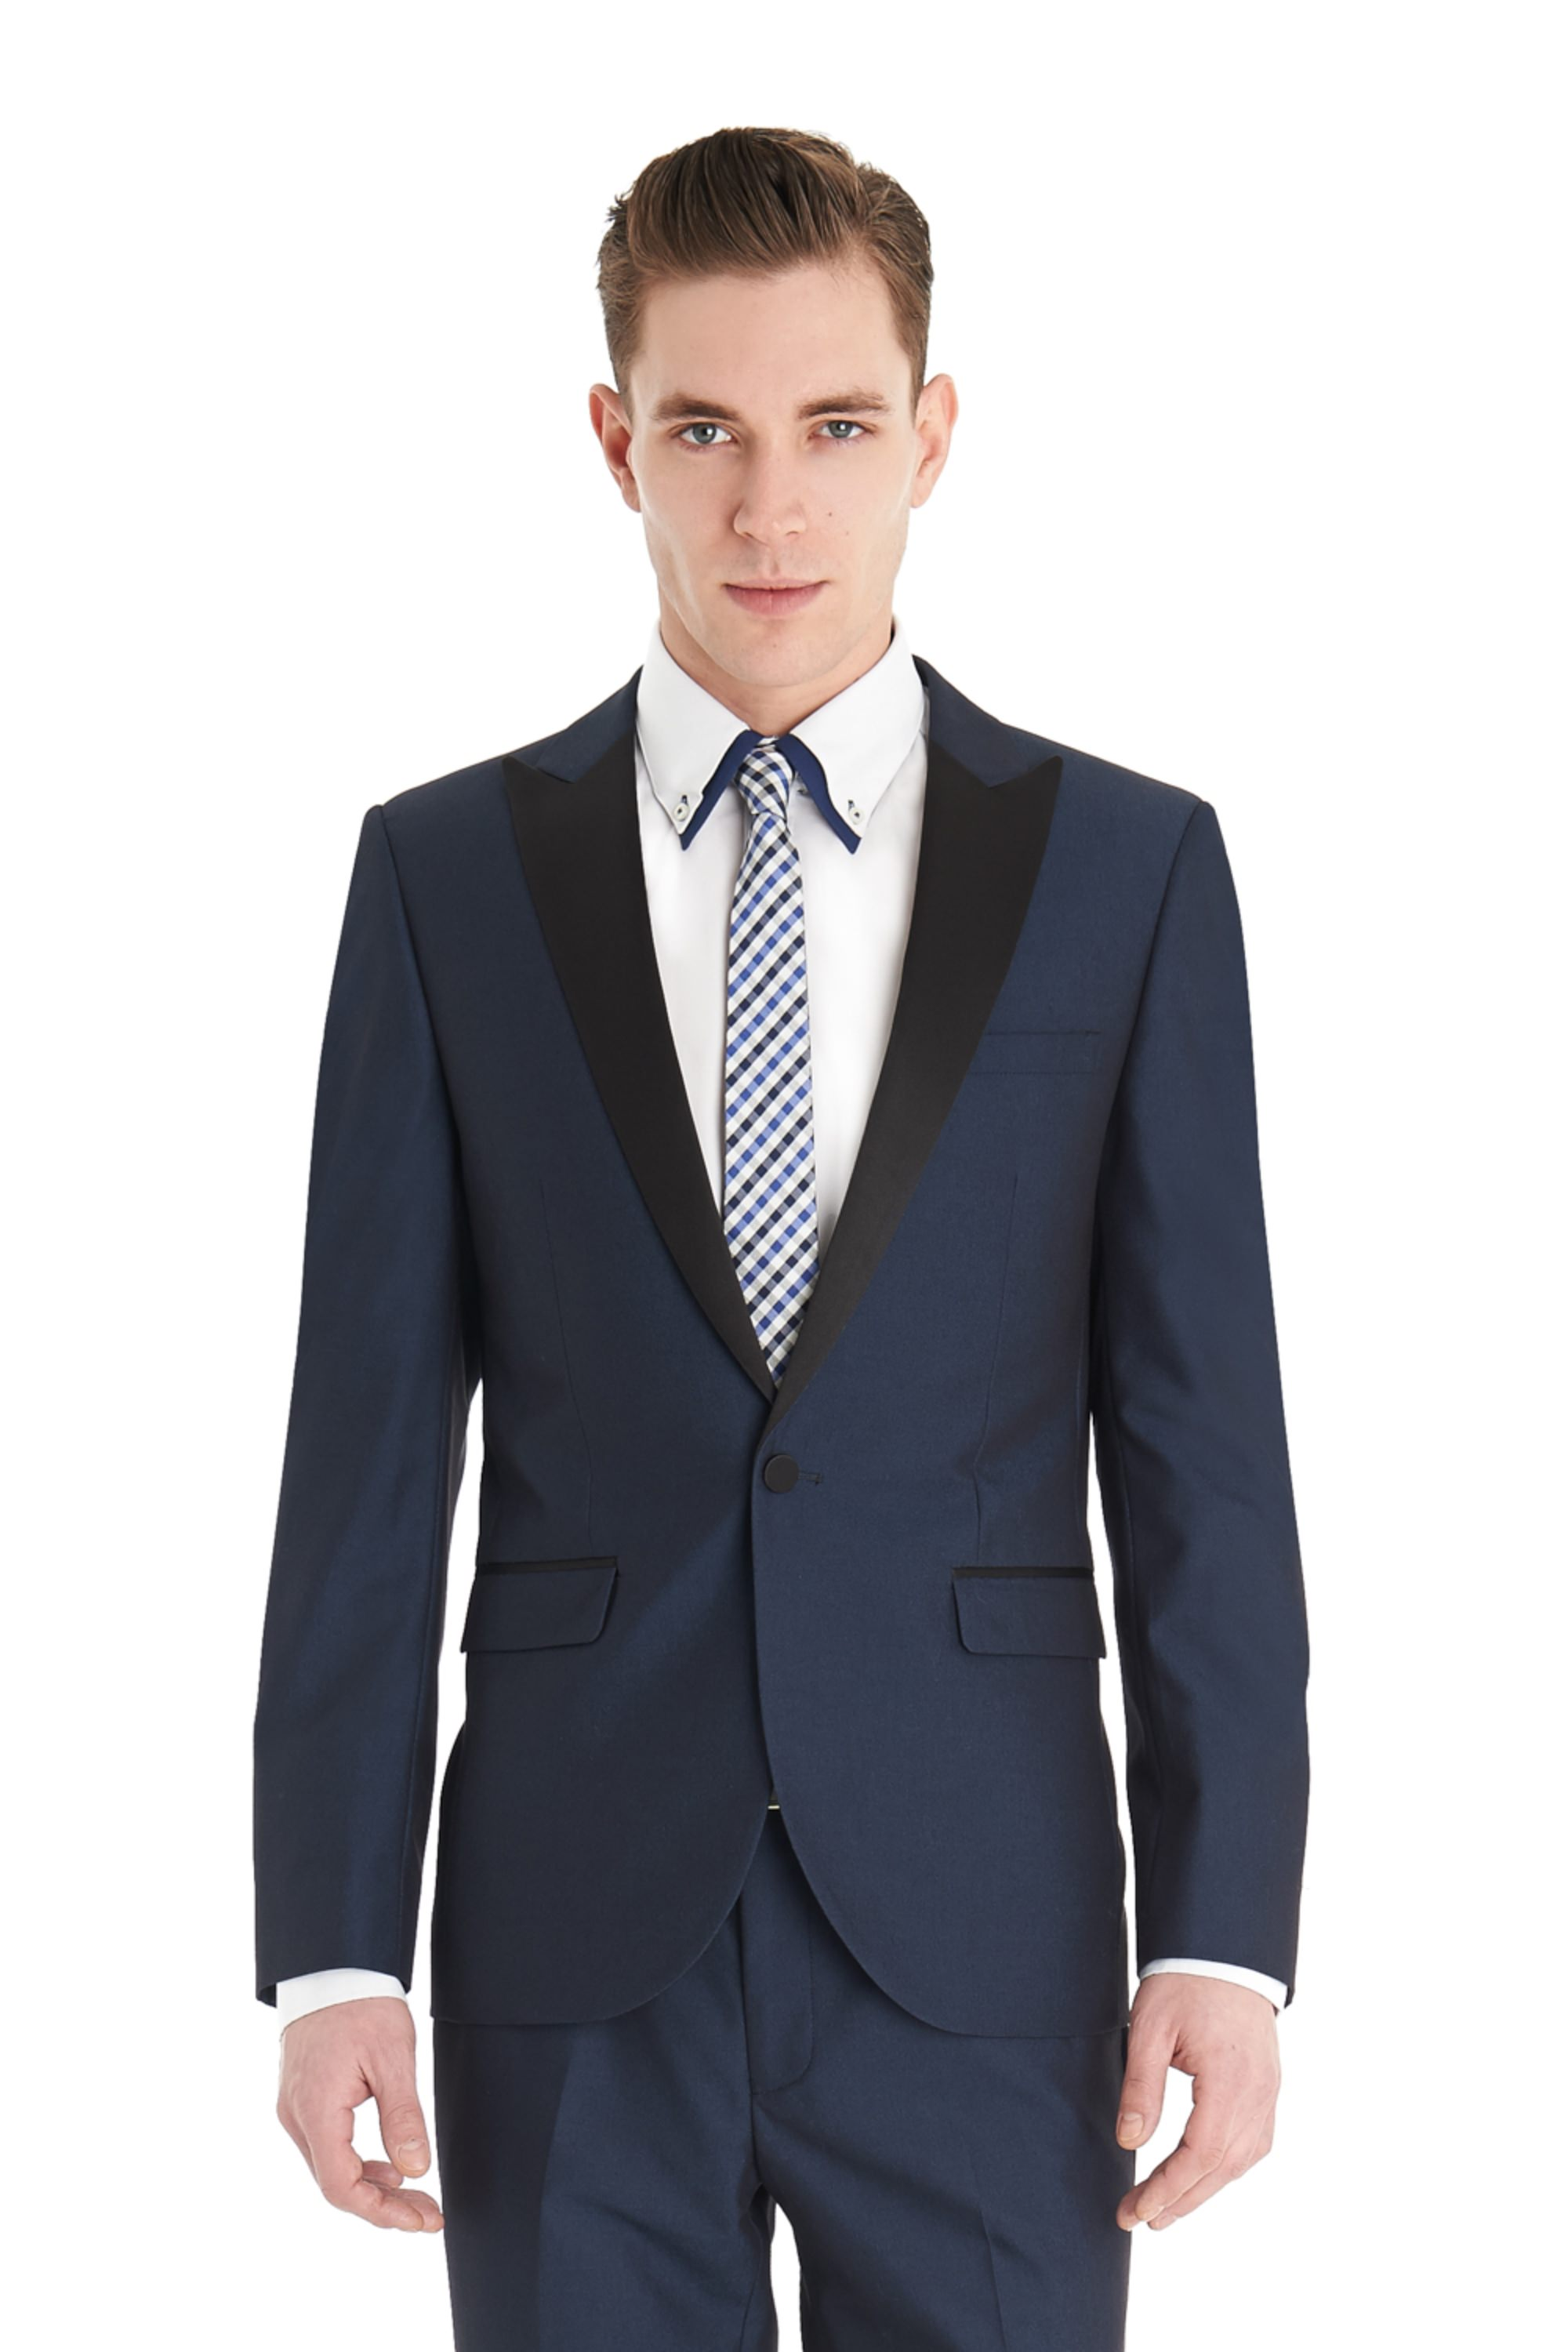 A dinner suit (or tuxedo) is the perfect outfit choice for a formal occasion. Whether you are looking to get dressed up for your work Christmas party or another black tie event, be sure to make a statement in one of our selected dinner suits.